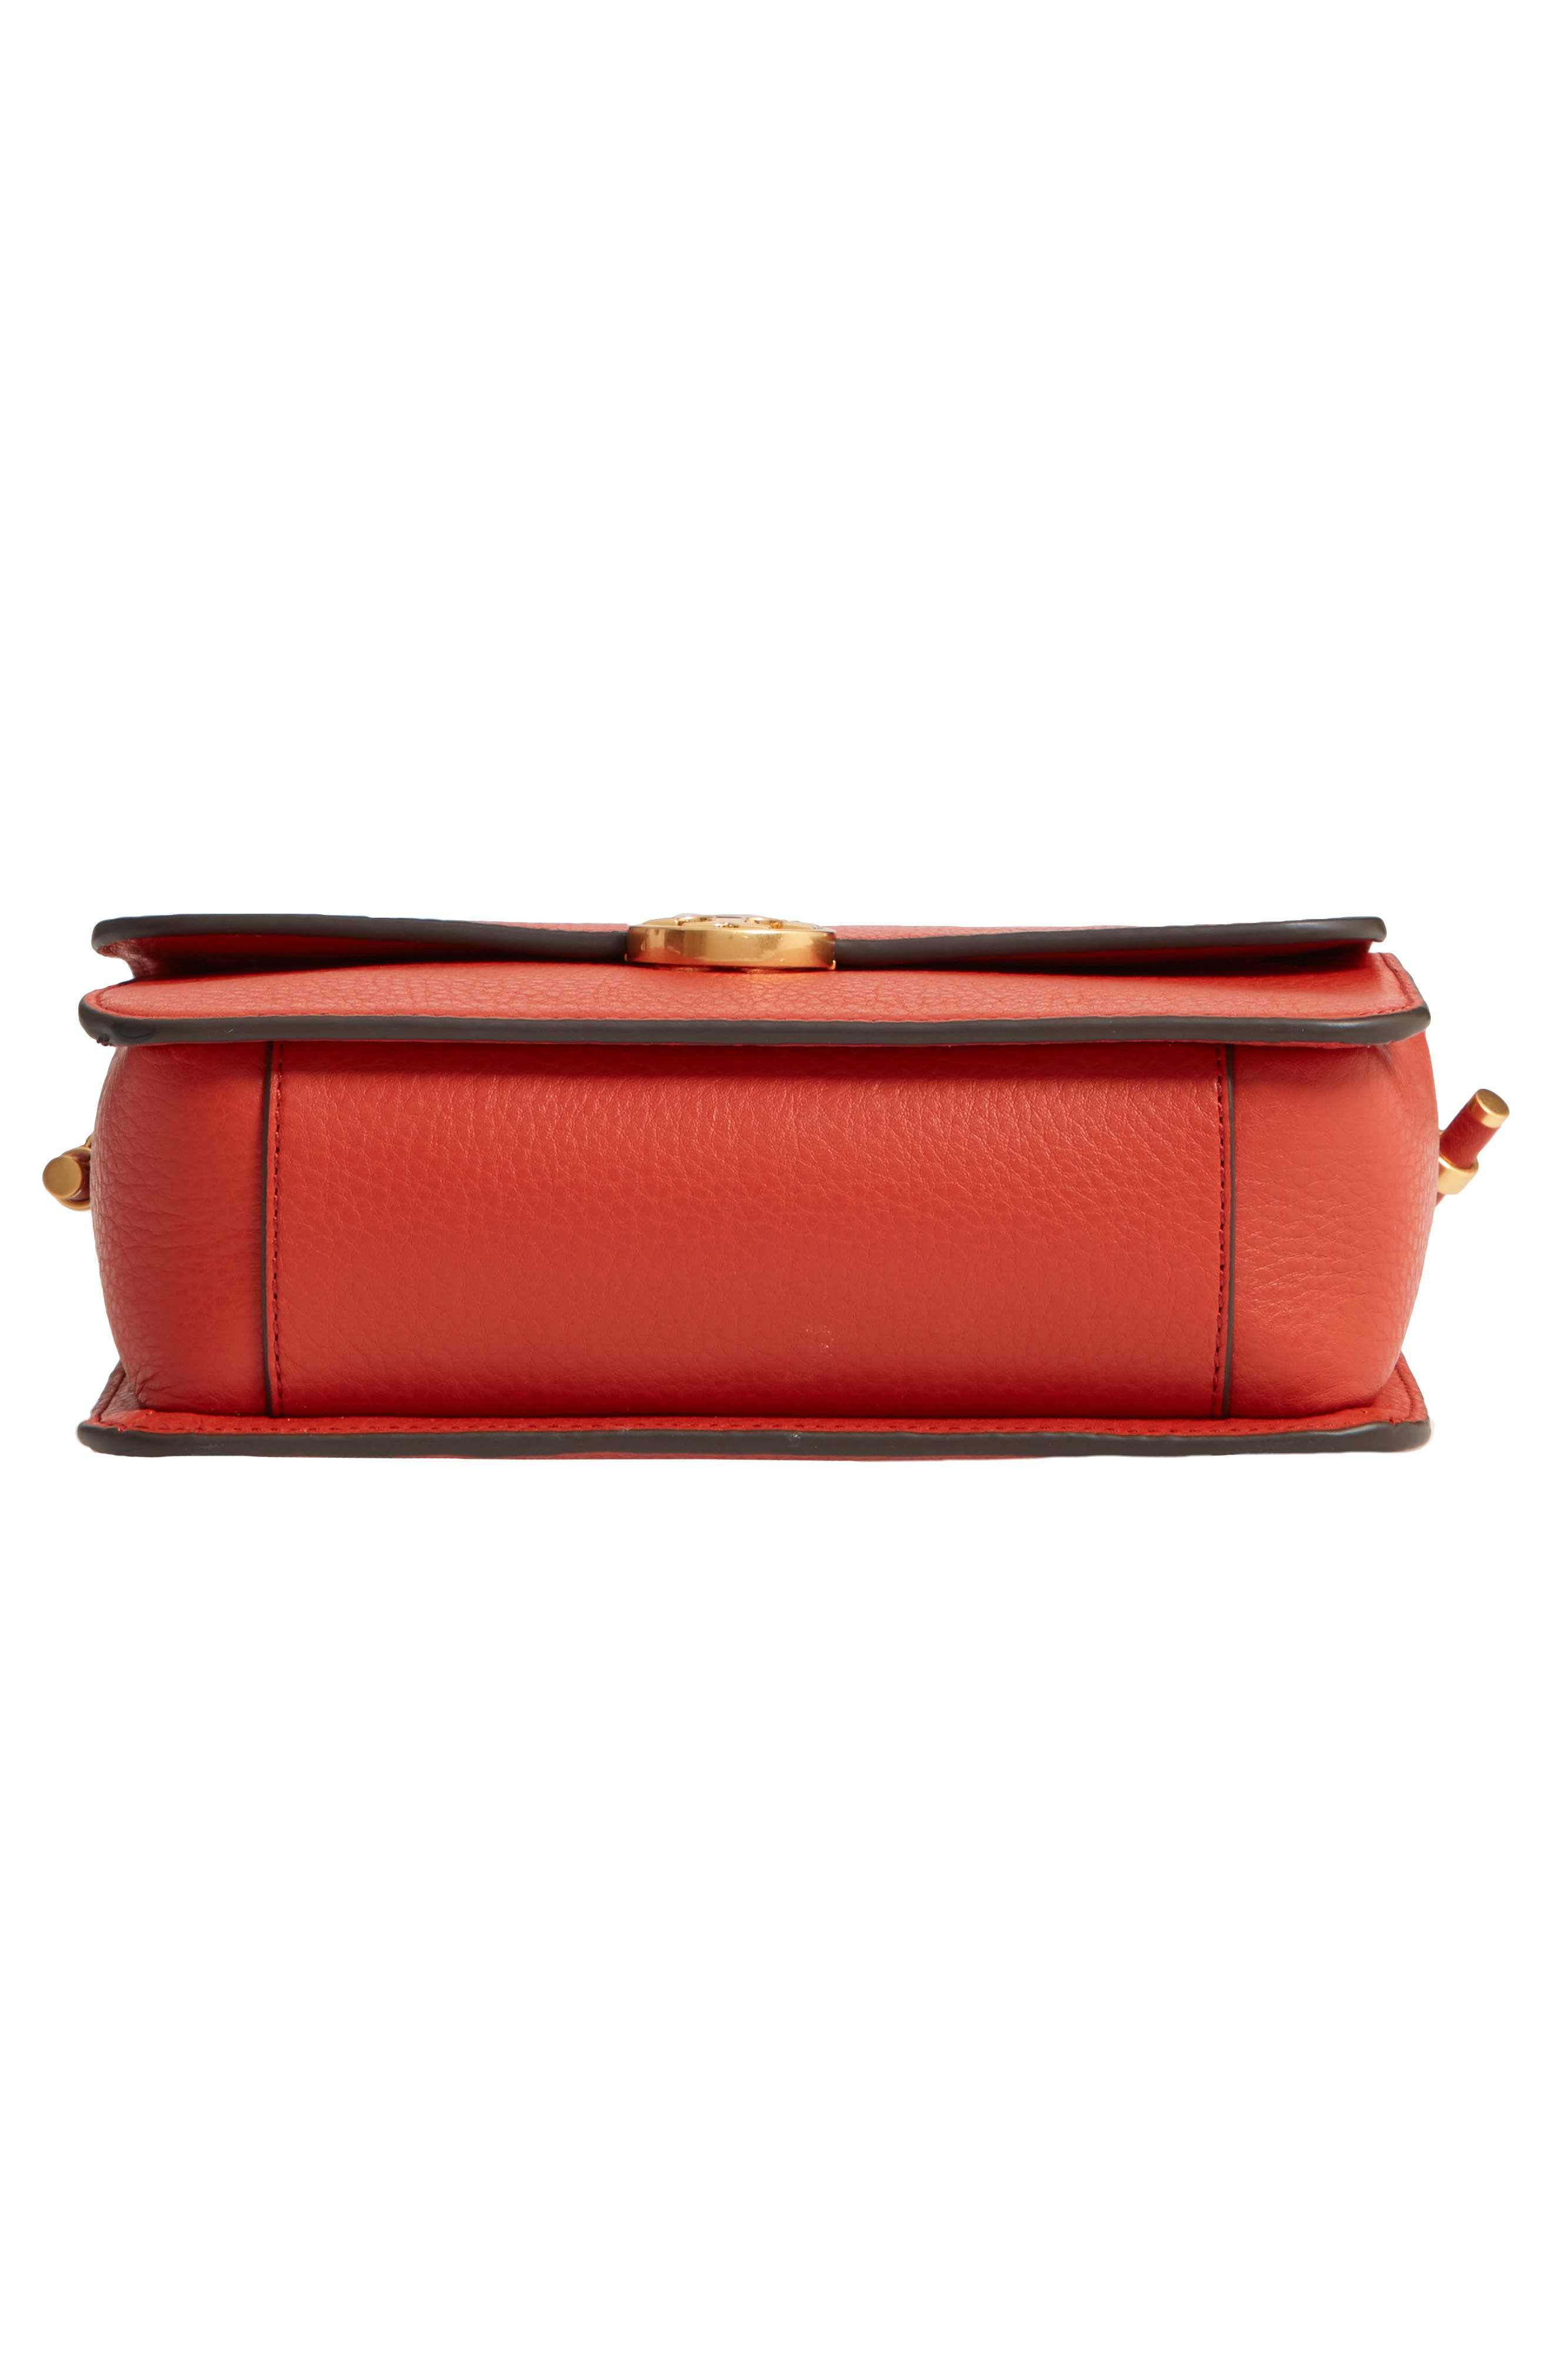 Chelsea Leather Crossbody Bag,                             Alternate thumbnail 5, color,                             Kola